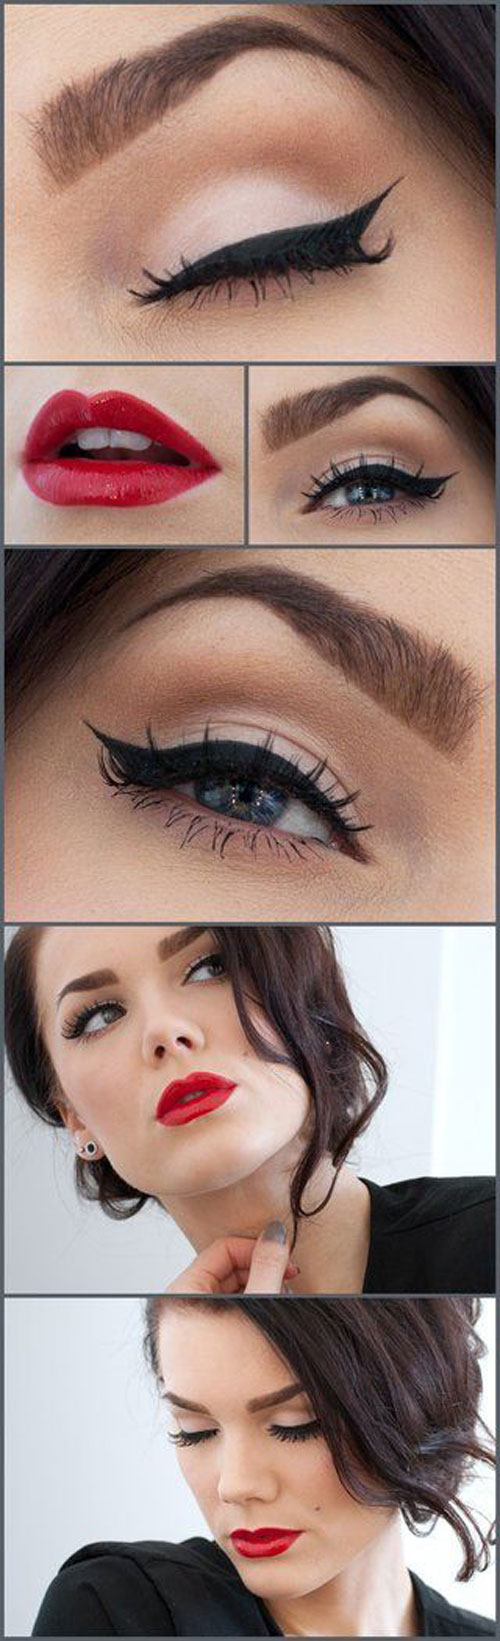 25-Spring-Makeup-Tutorials-2015-6